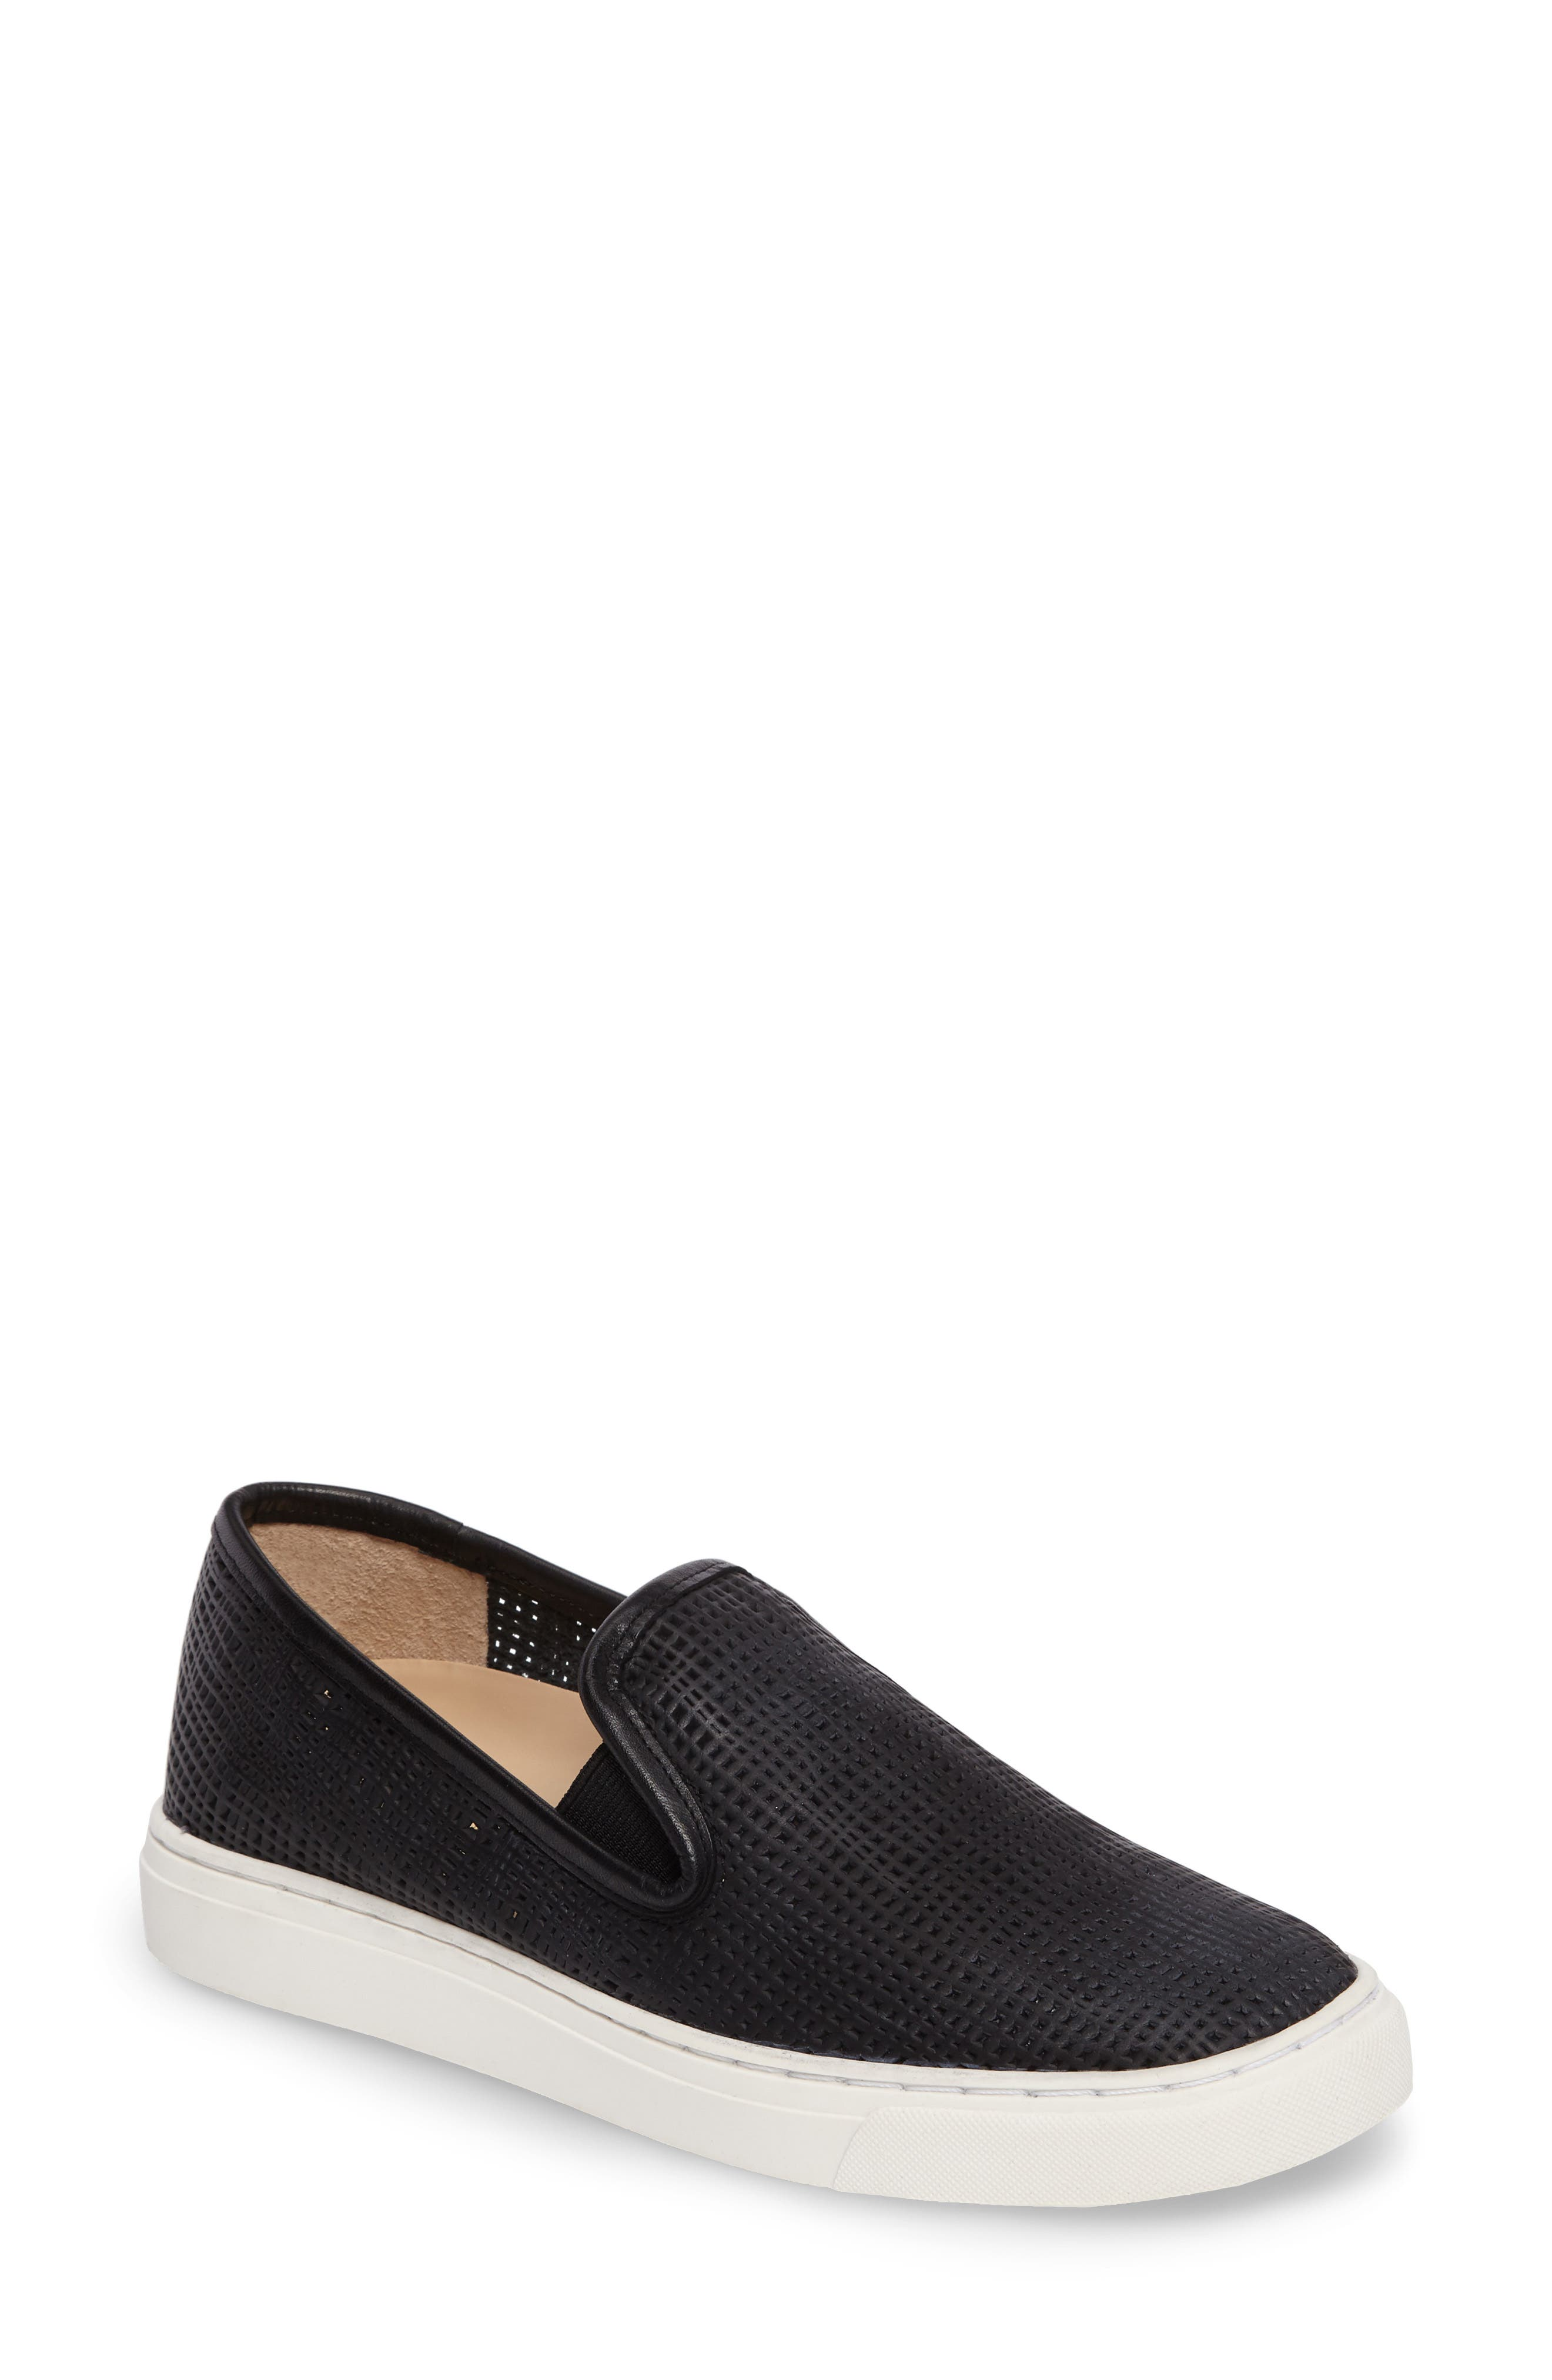 Vince Camuto Becker Perforated Slip-On